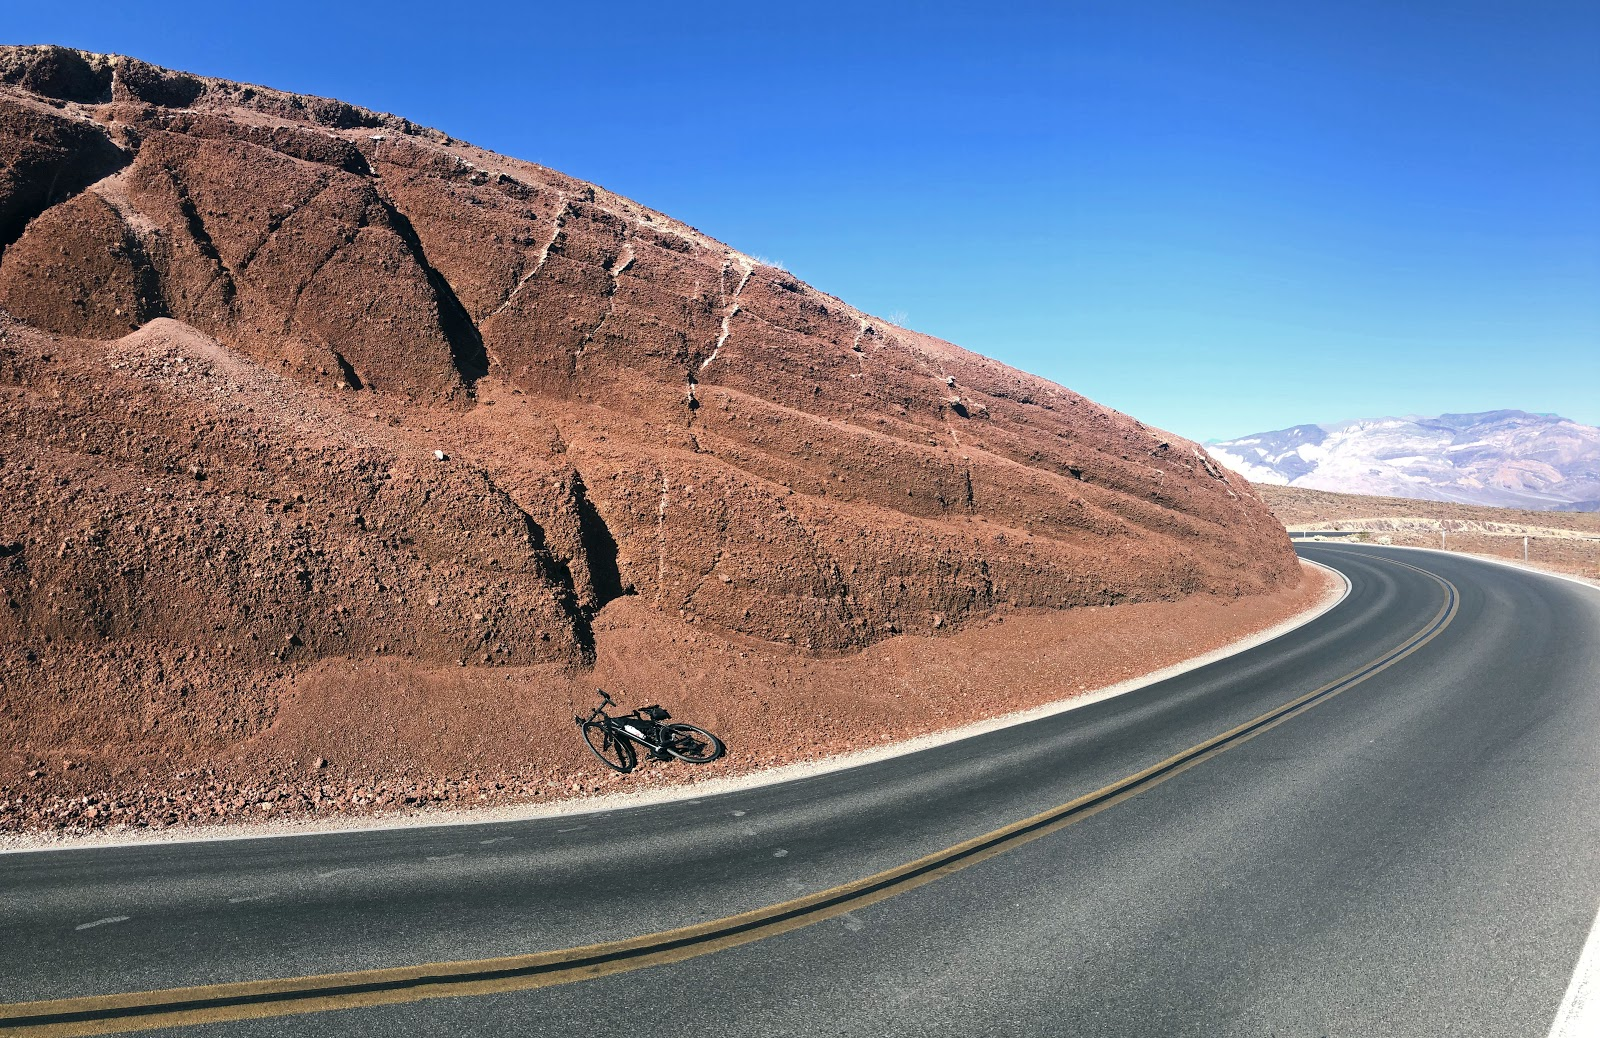 Climbing Panamint Grade by bike - bicycle leaning against red rock